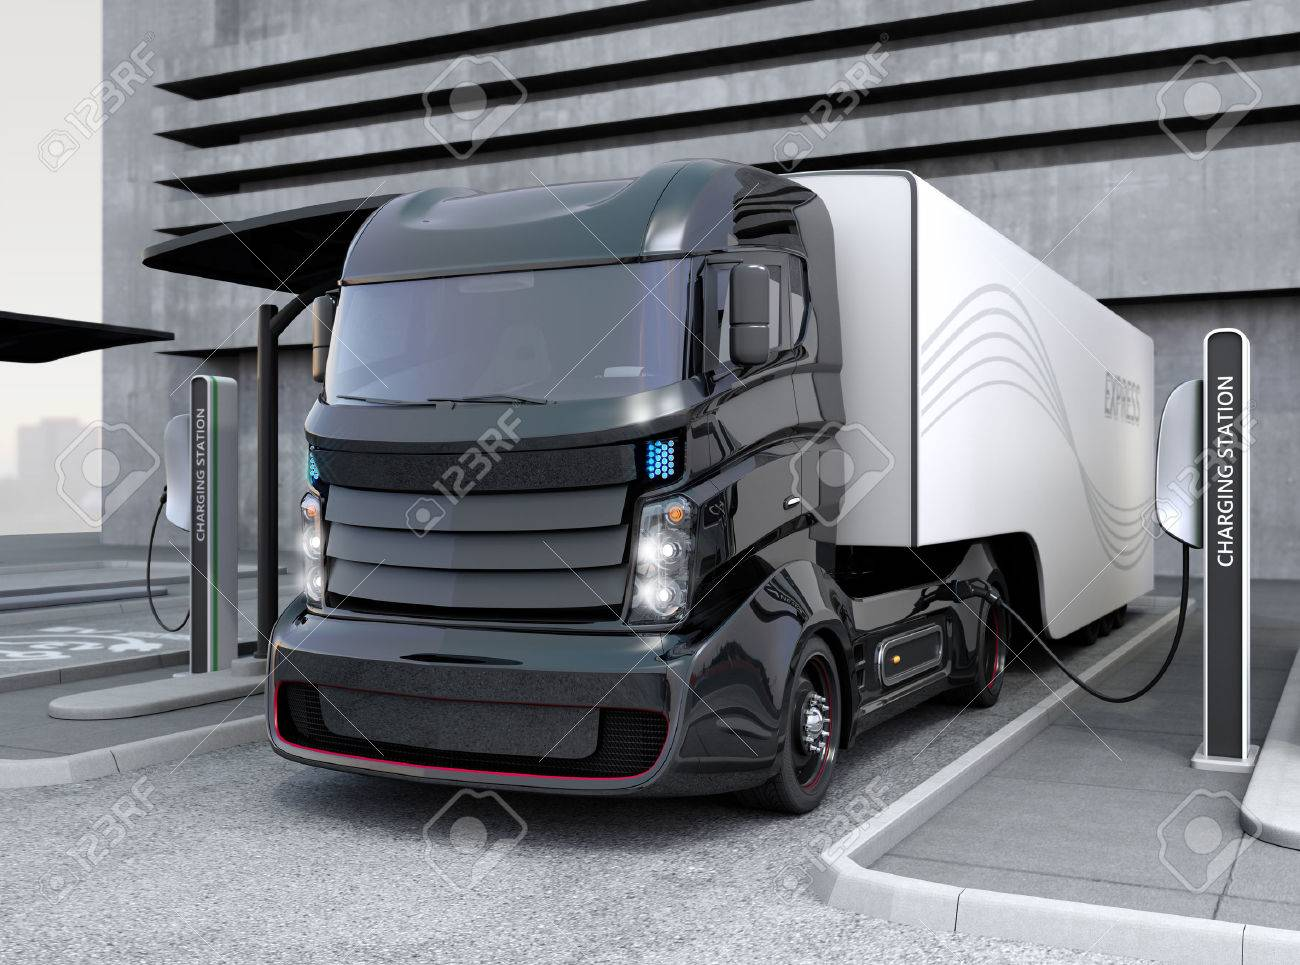 Hybrid electric truck being charging at charging station - 55050853